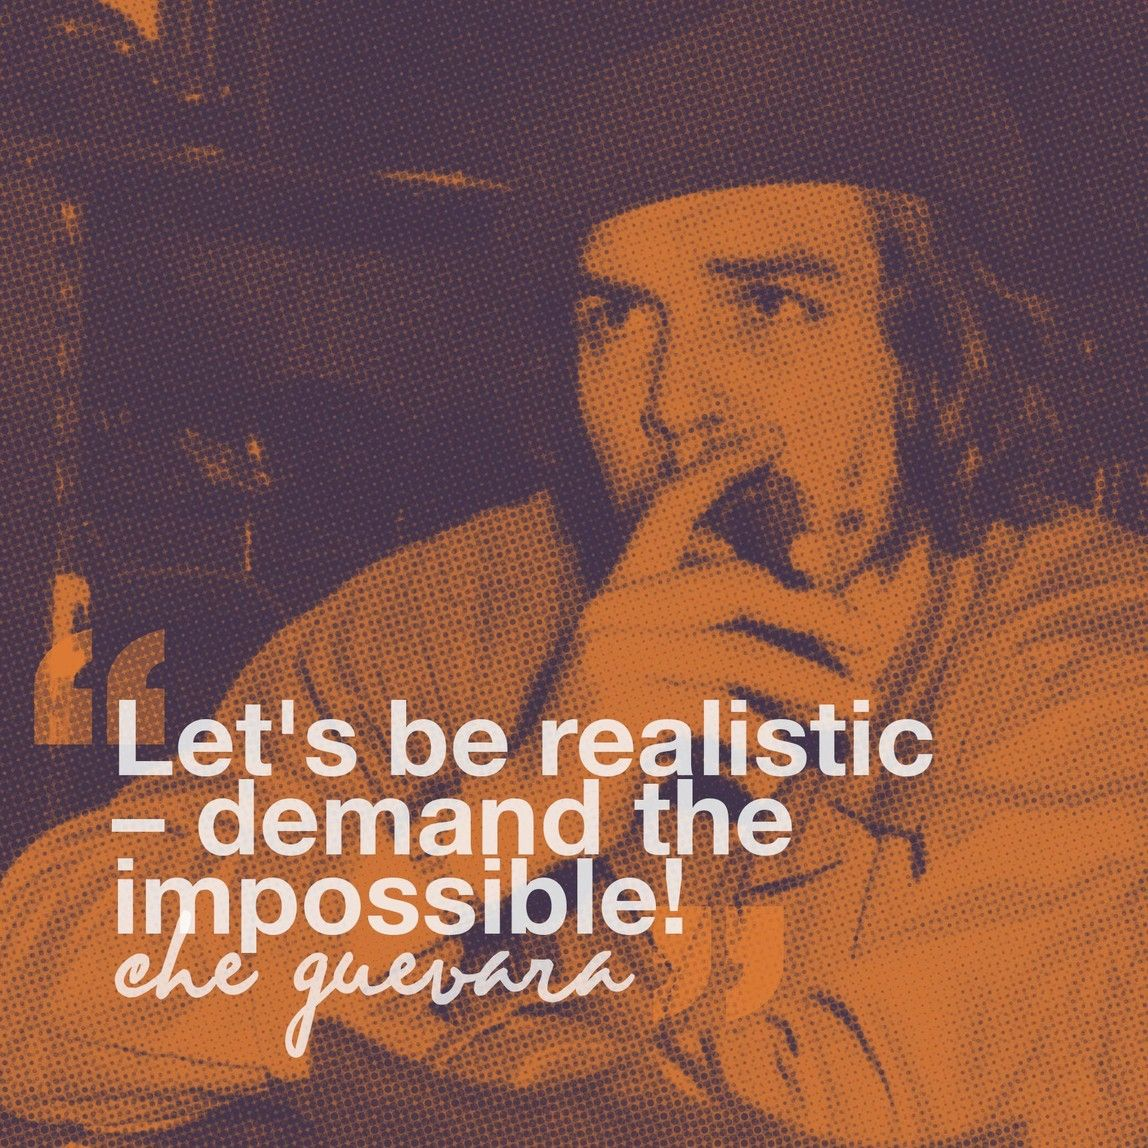 Todayimchannelling Lets Be Realistic Demand The Impossible Che